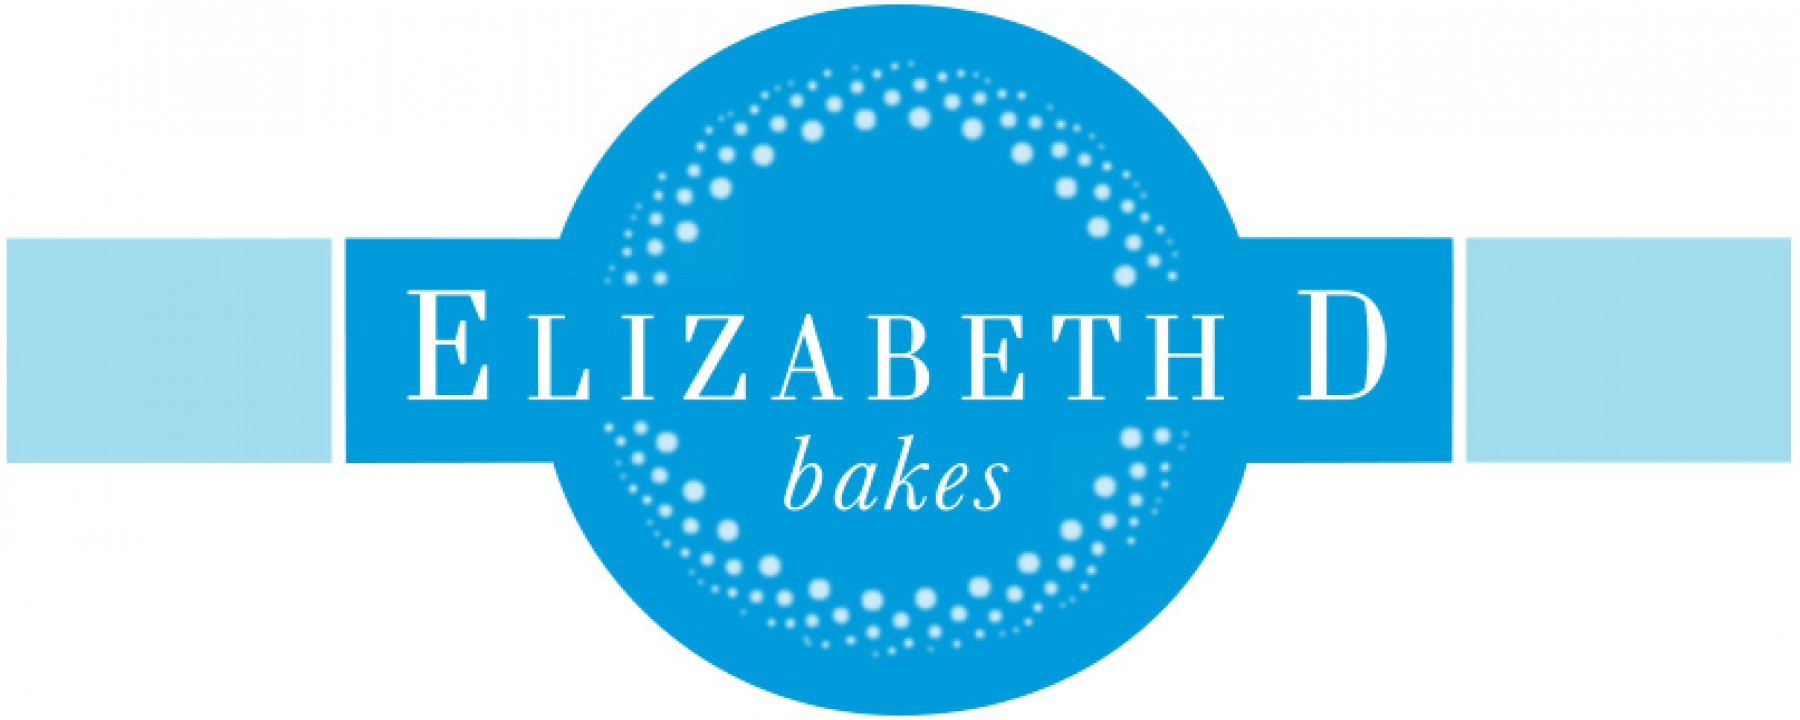 "ElizabethDbakes is a London based ""Free From"" Wholesale Bakery: 100% gluten-free, loads of delicious Vegan, dairy-free & low sugar."